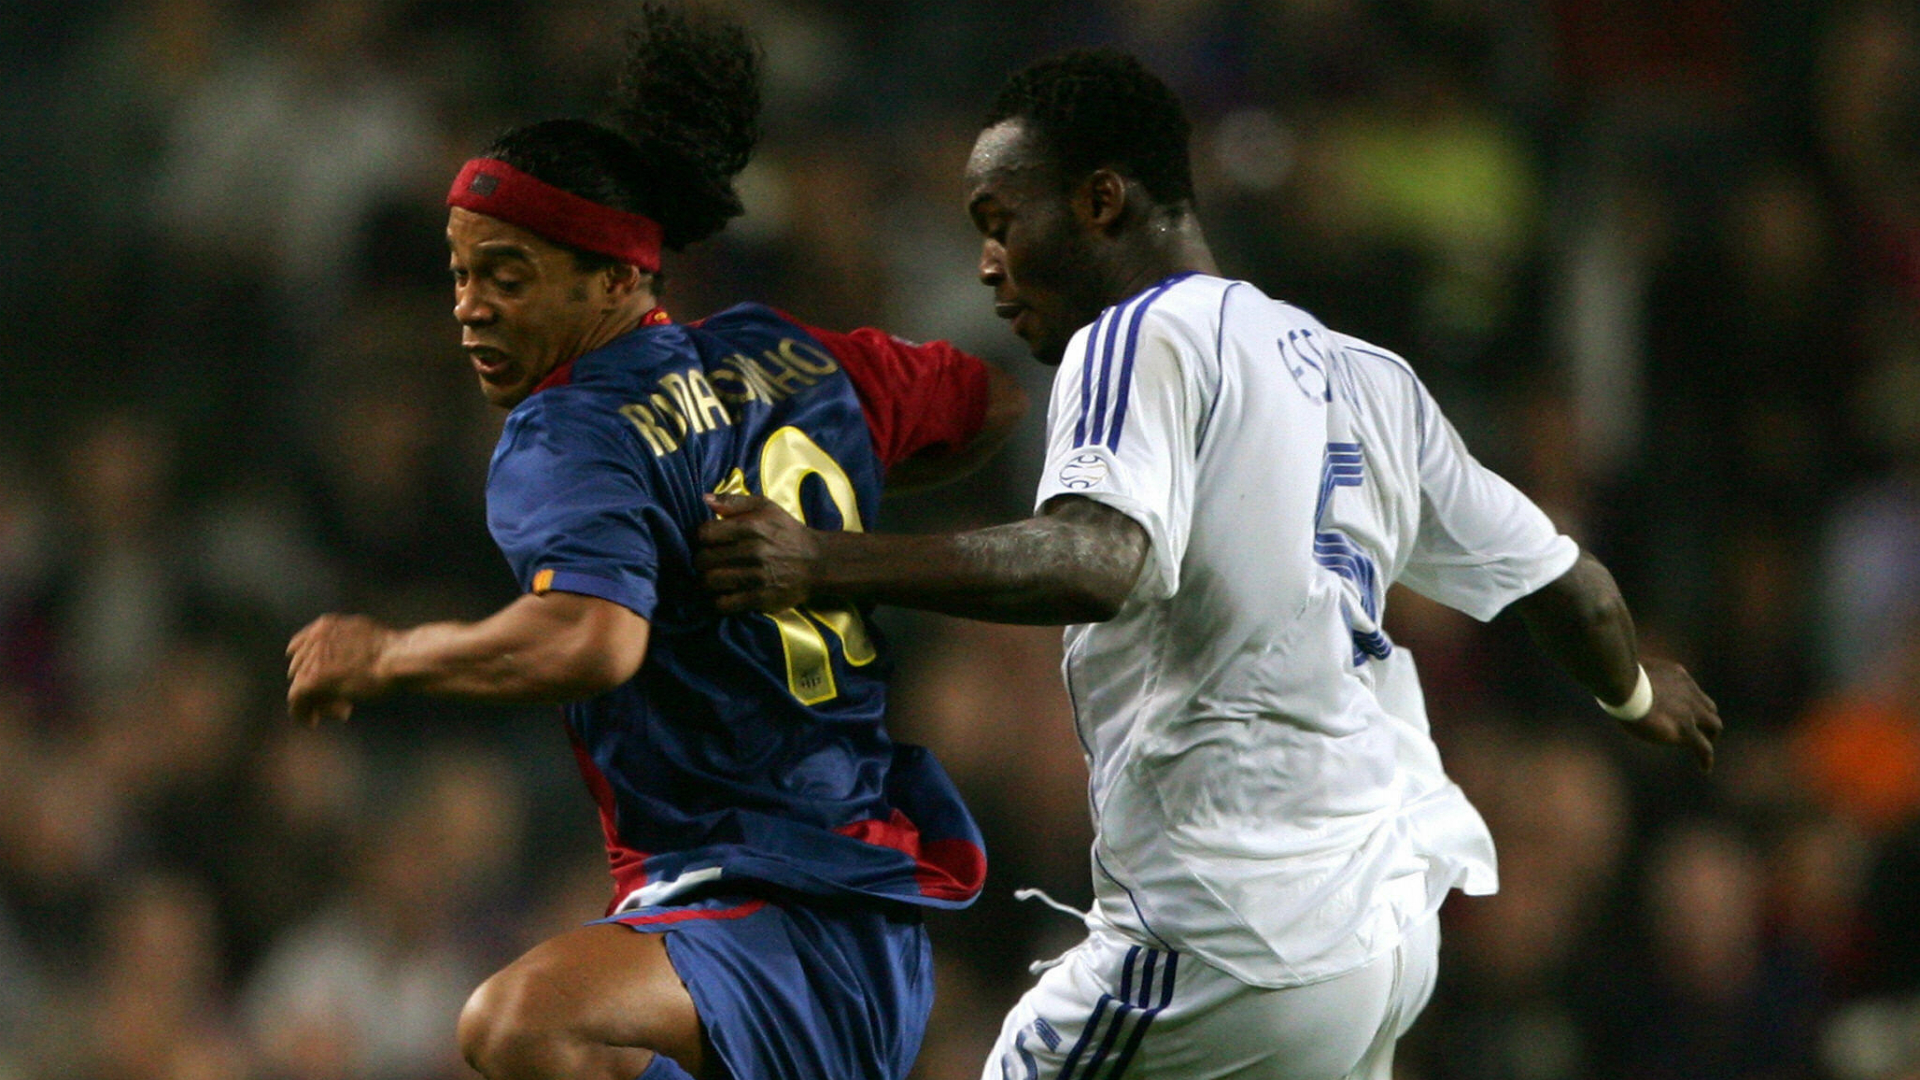 Michael Essien to play with Ronaldinho, Figo and other football greats in Match for Solidarity